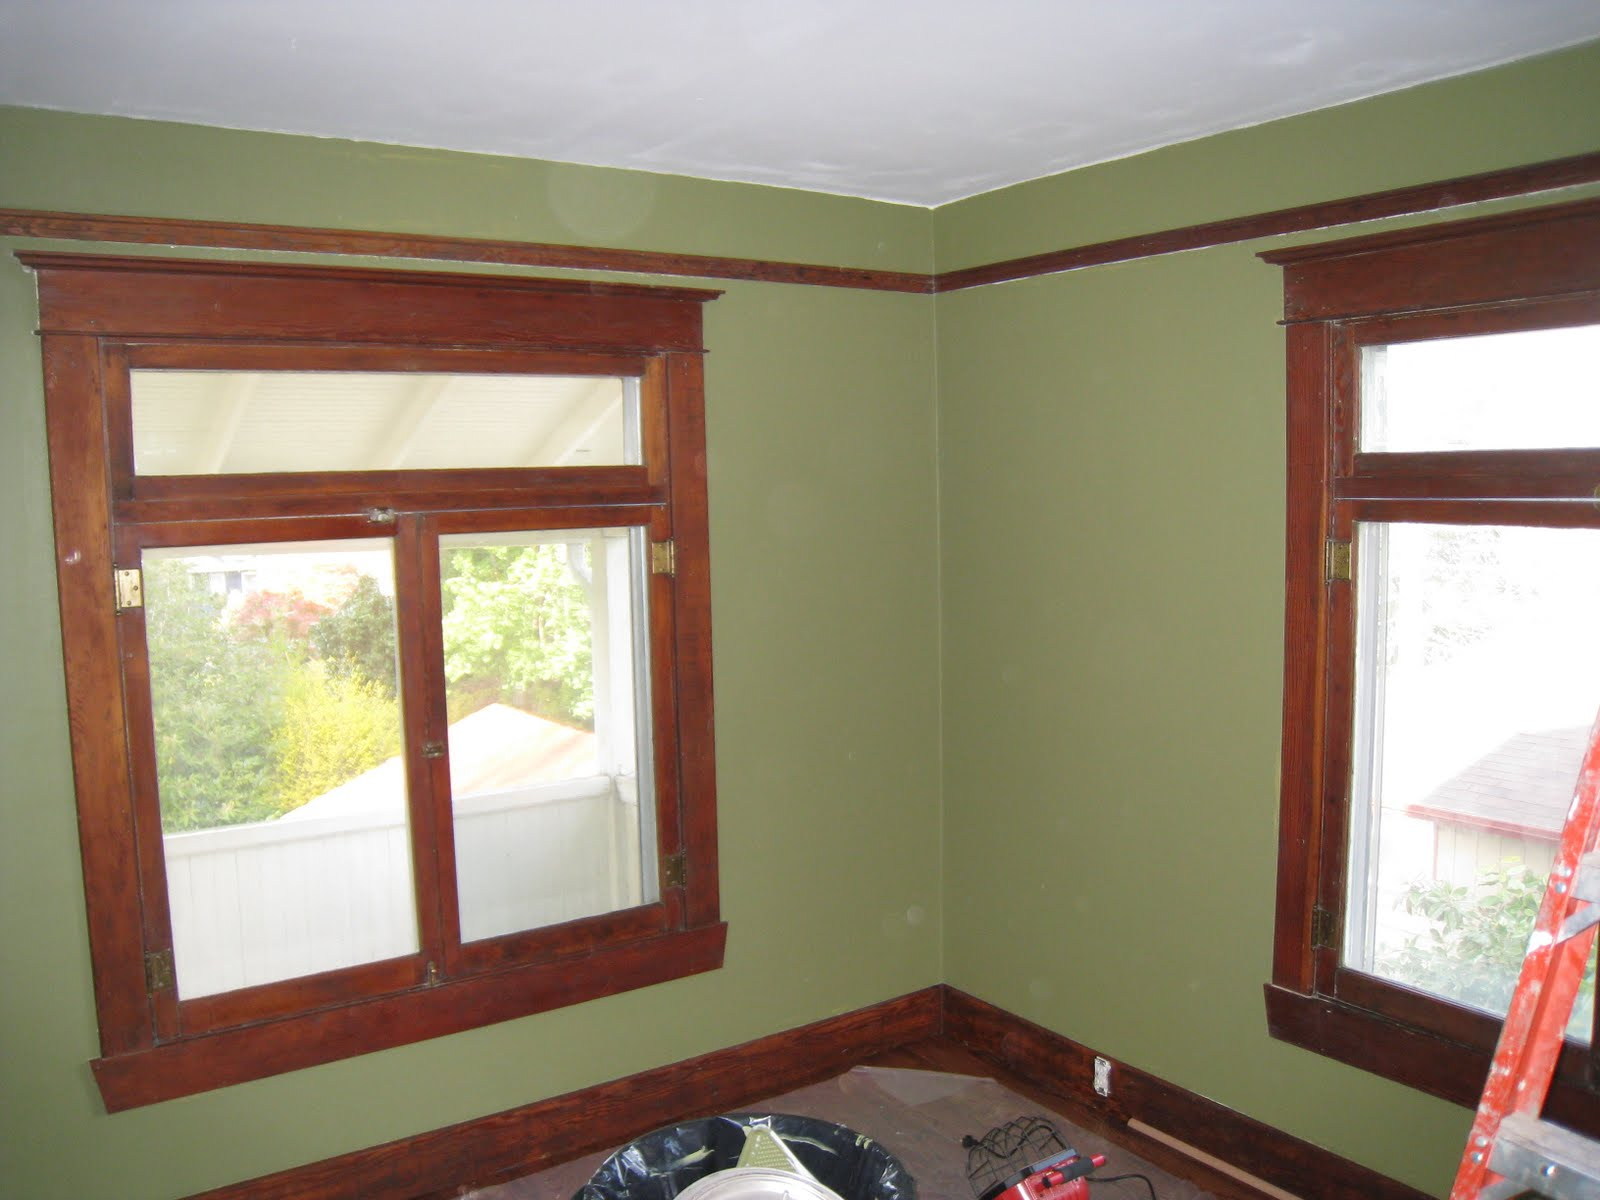 20 Benefits Of Earth Tone Wall Paint Colors Home Design